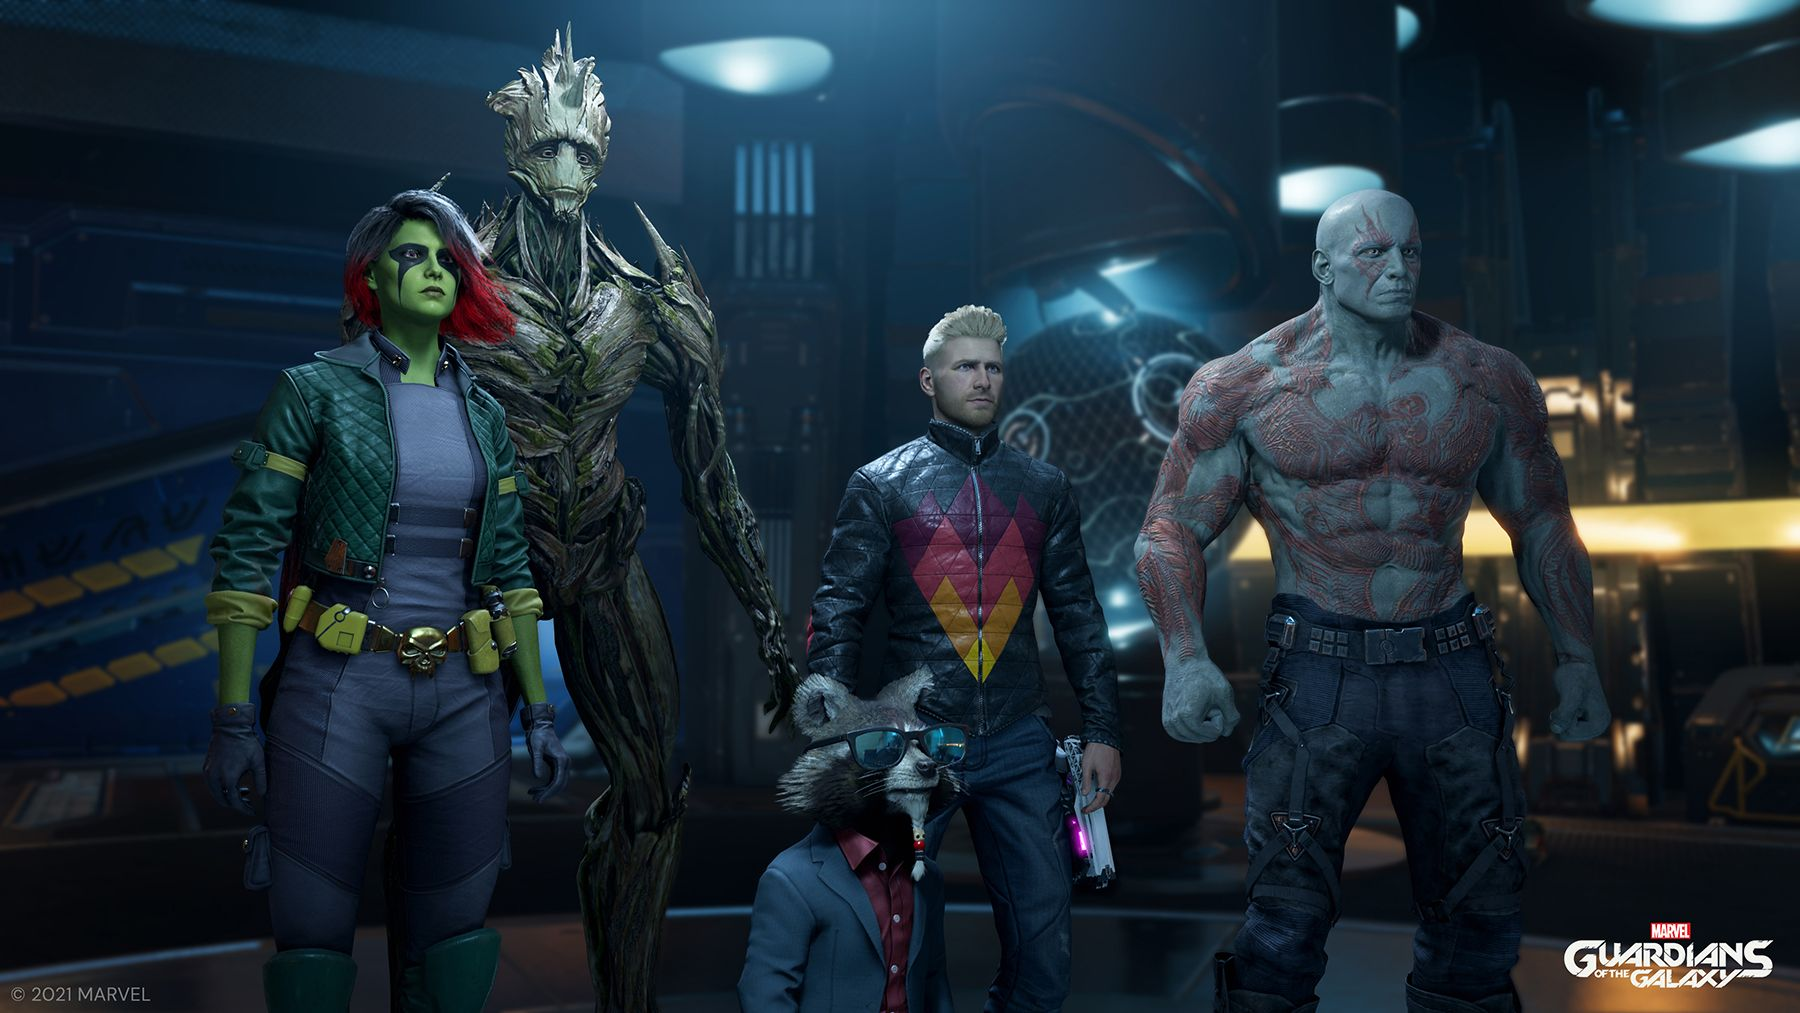 Preview: Guardians of the Galaxy – promising space action from Square Enix